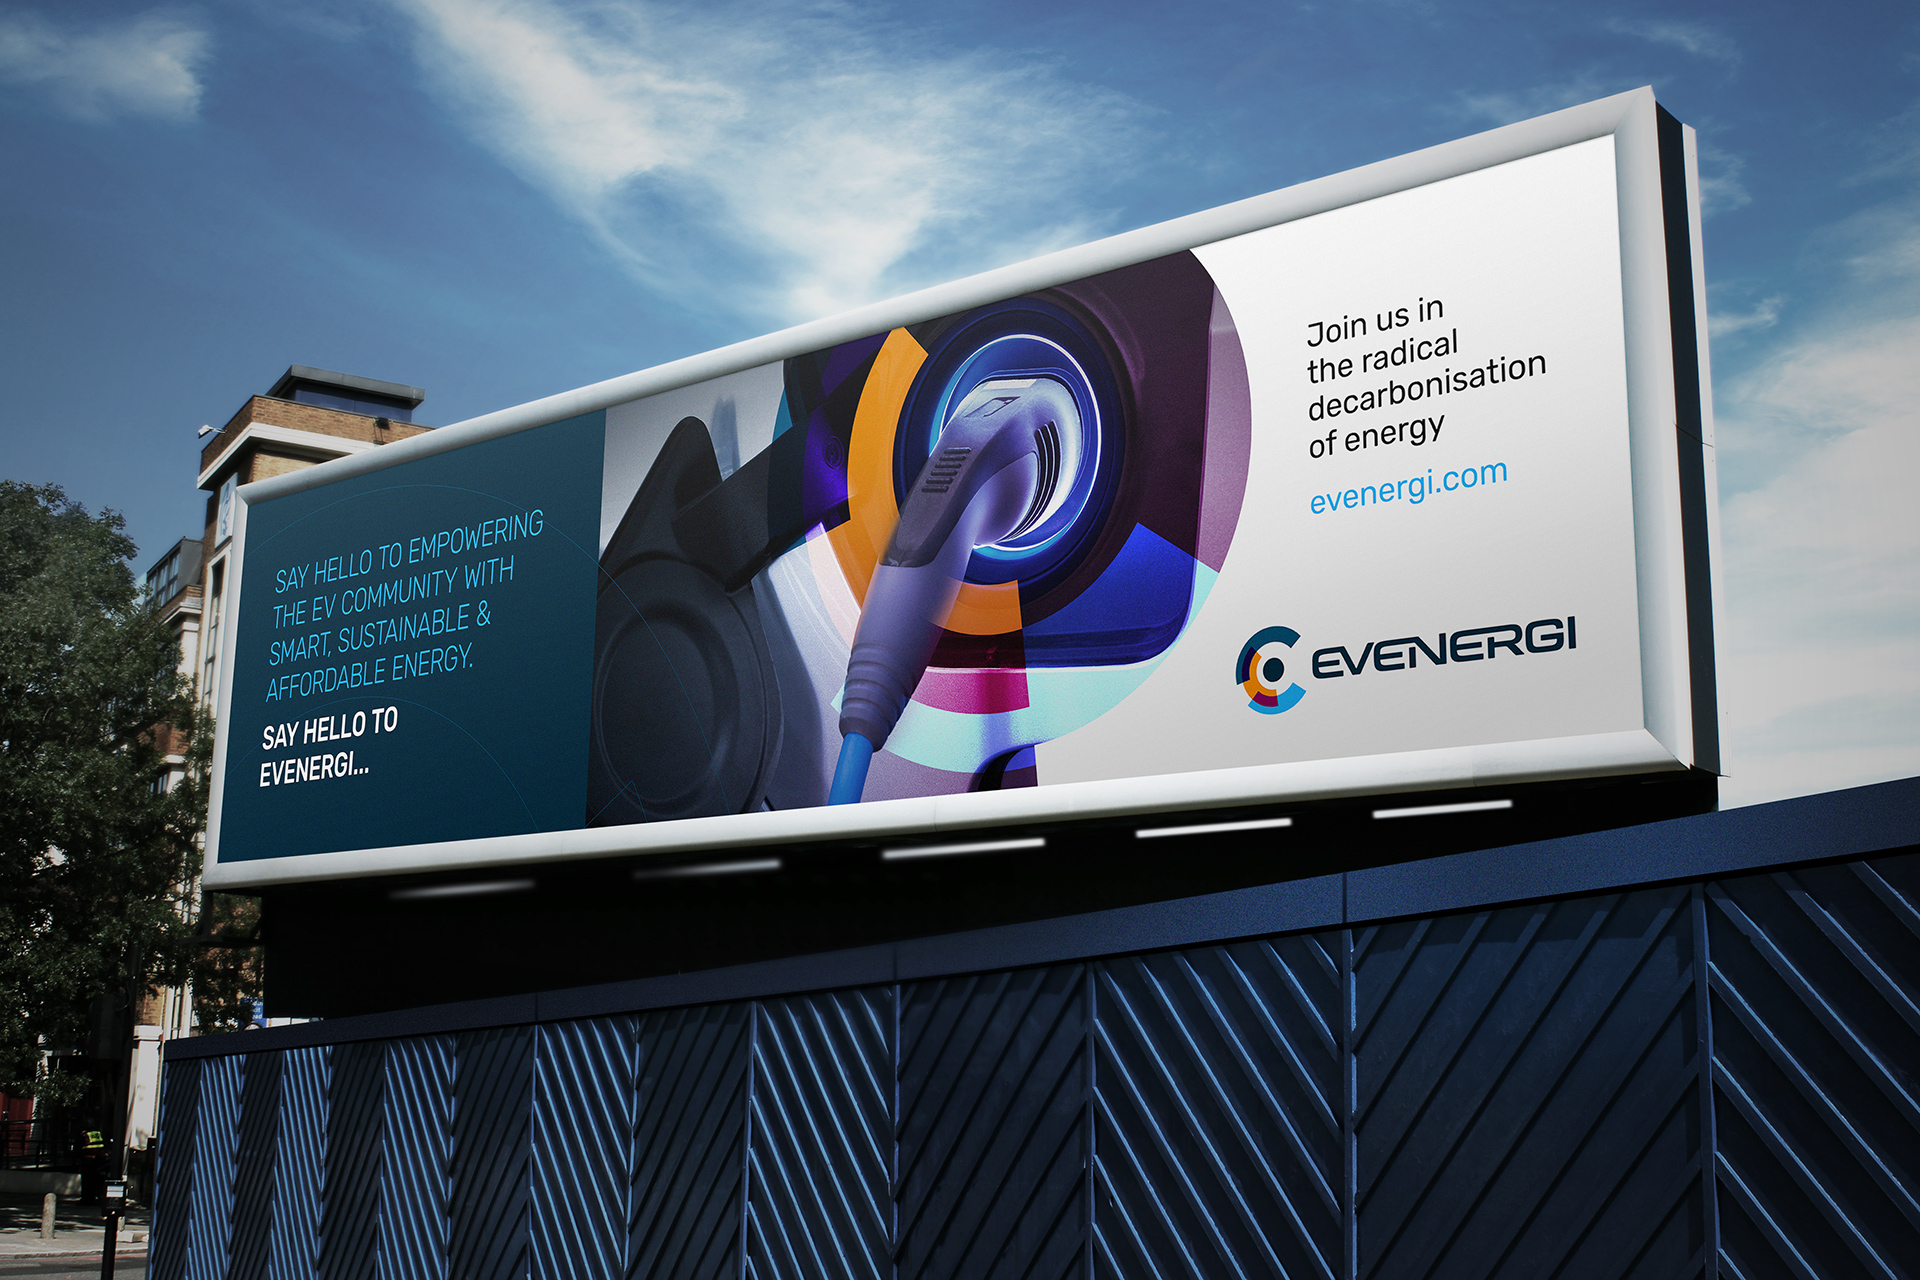 The combination of a techy aesthetic and commanding tone of voice calls upon the target audience to join the EV revolution.